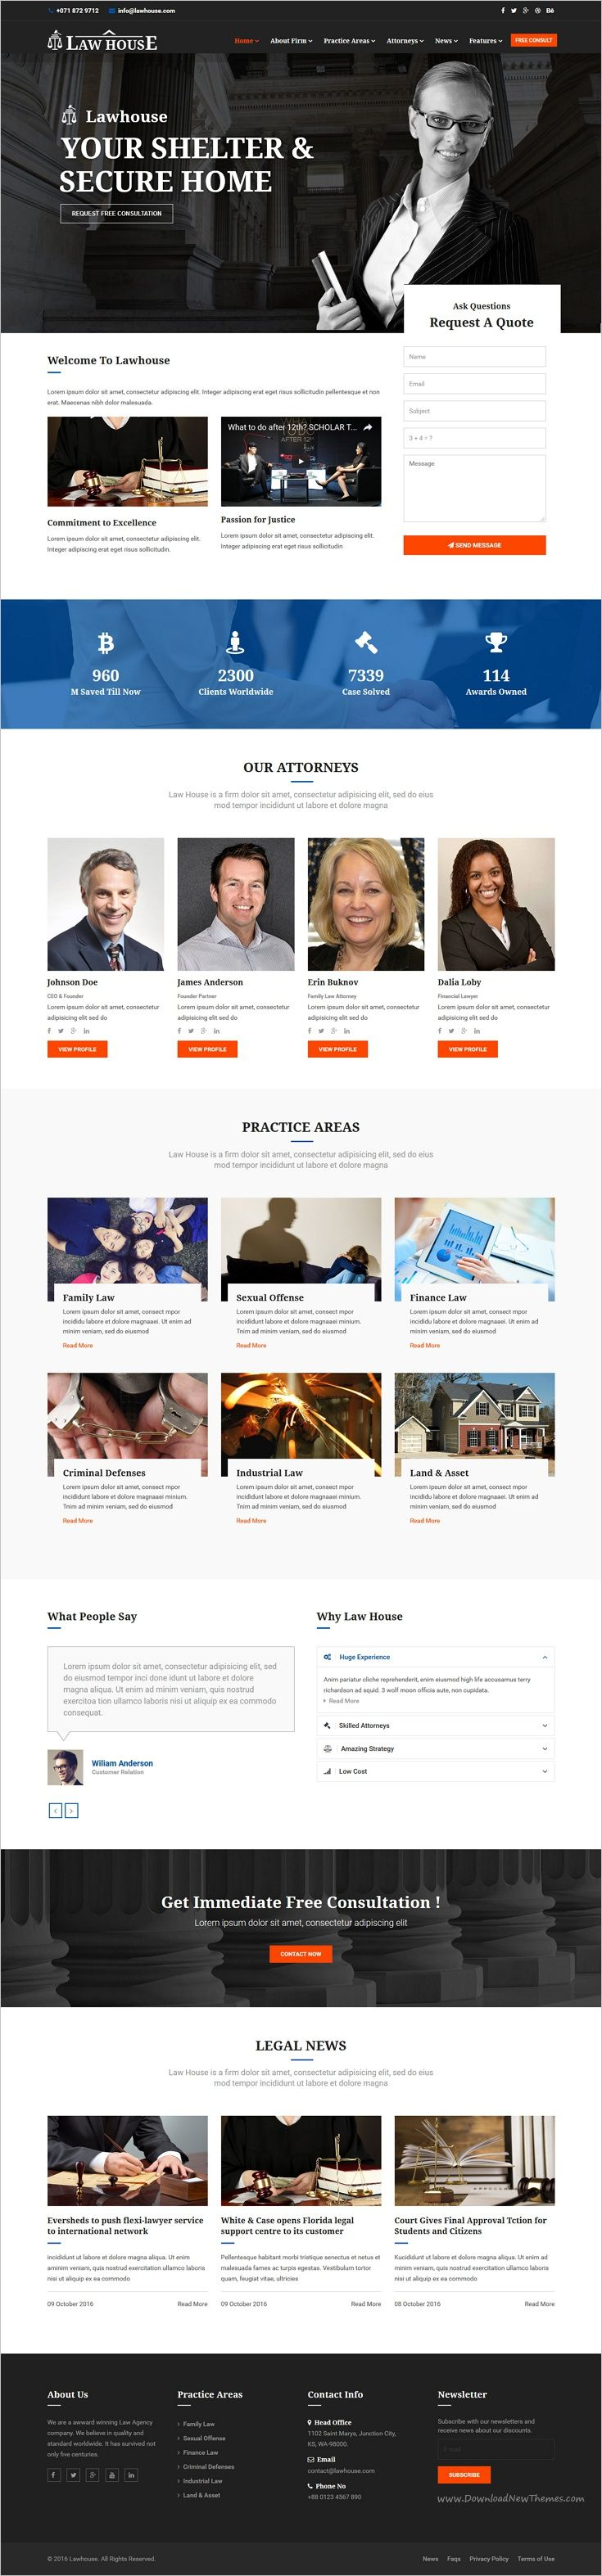 Best 25 lawyer website ideas on pinterest law firm website law lawhouse joomla template for lawyers attorneys and law firm pronofoot35fo Choice Image